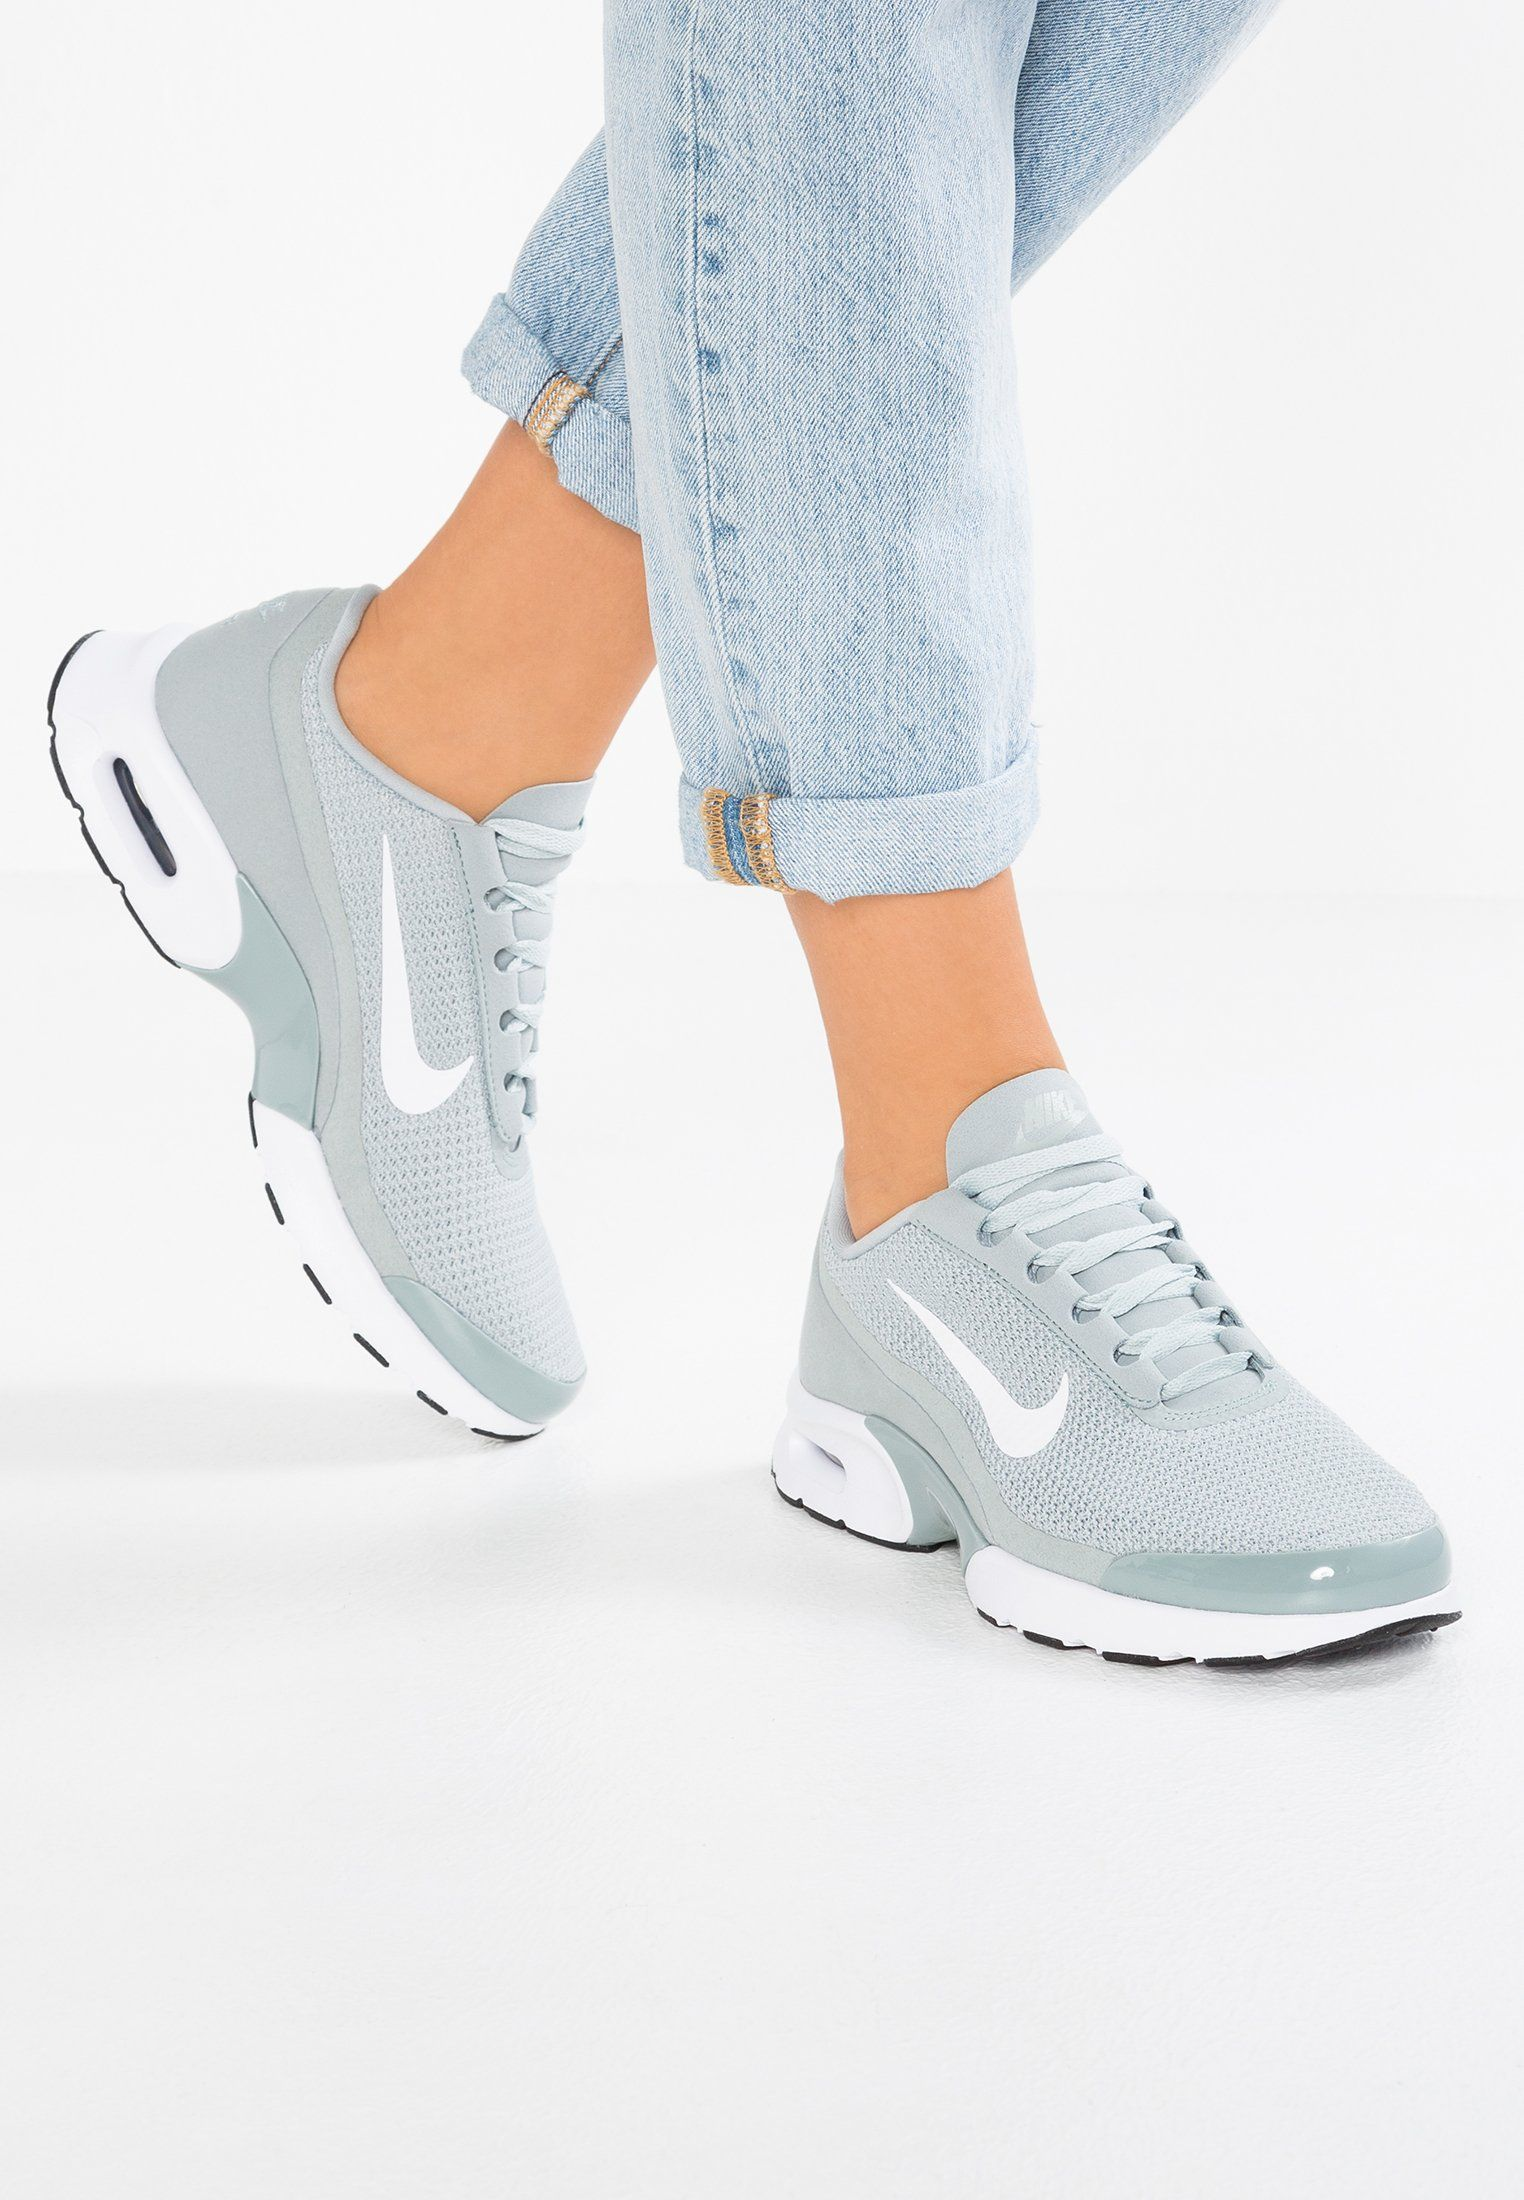 wholesale dealer af7f2 1eee2 Schoenen Nike Sportswear AIR MAX JEWELL - Sneakers laag - light  pumice white black blauwgrijs  € 109,95 Bij Zalando (op 6 03 18).